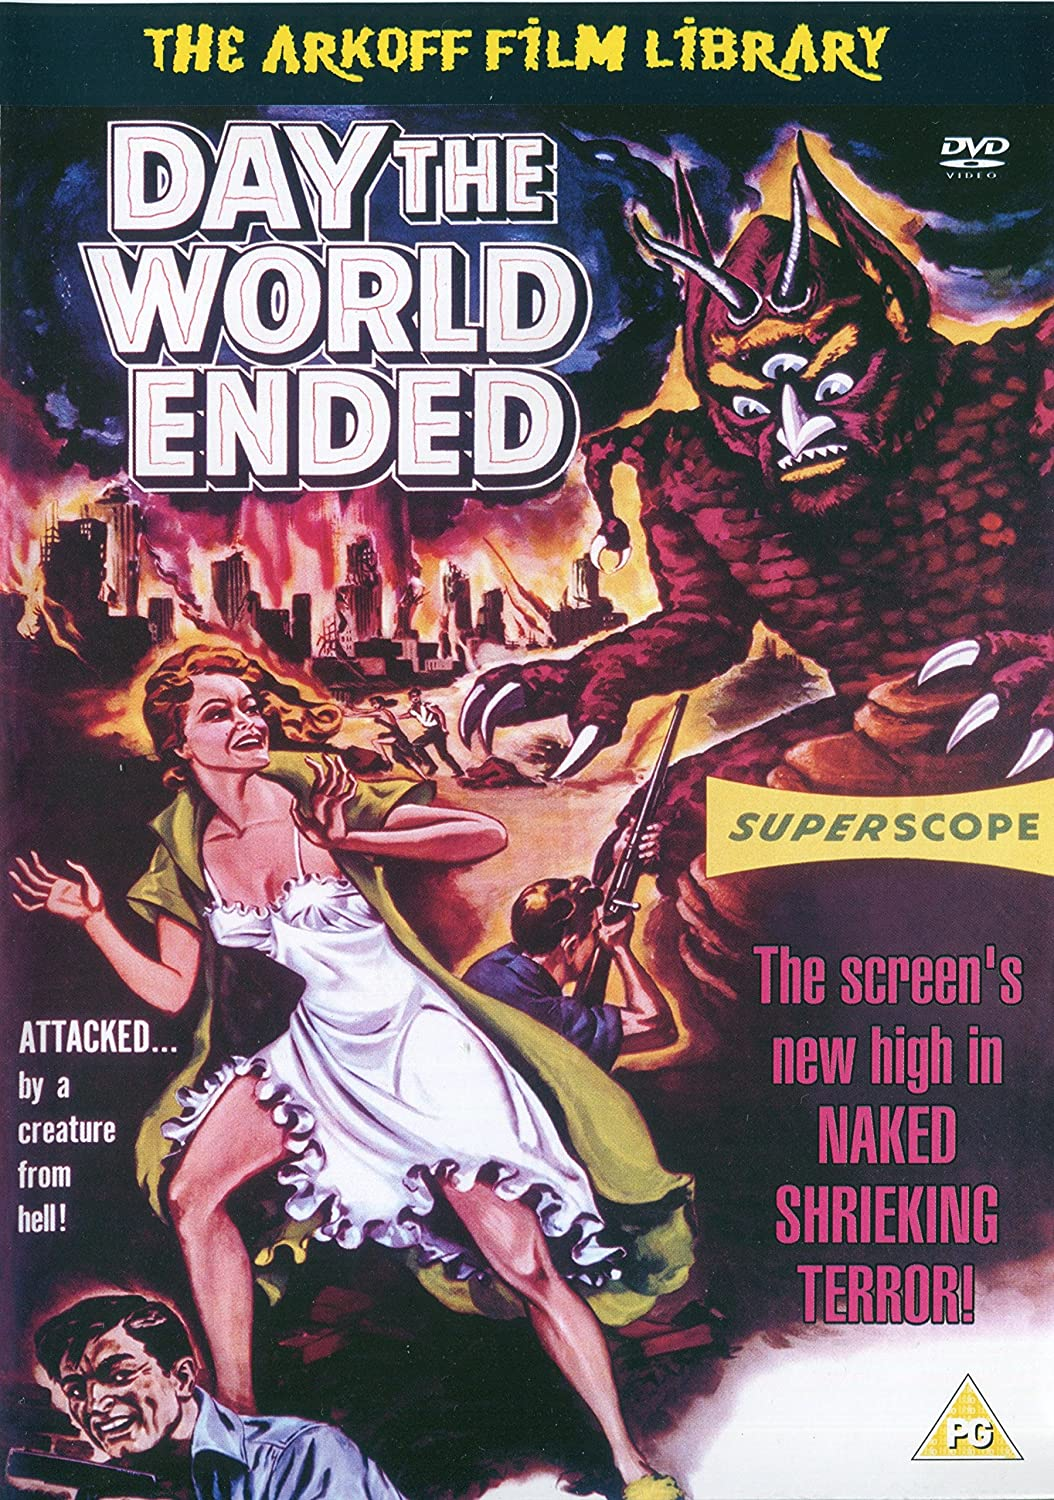 Day The World Ended (1955) starring Richard Denning, Lori Nelson, Mike Connors